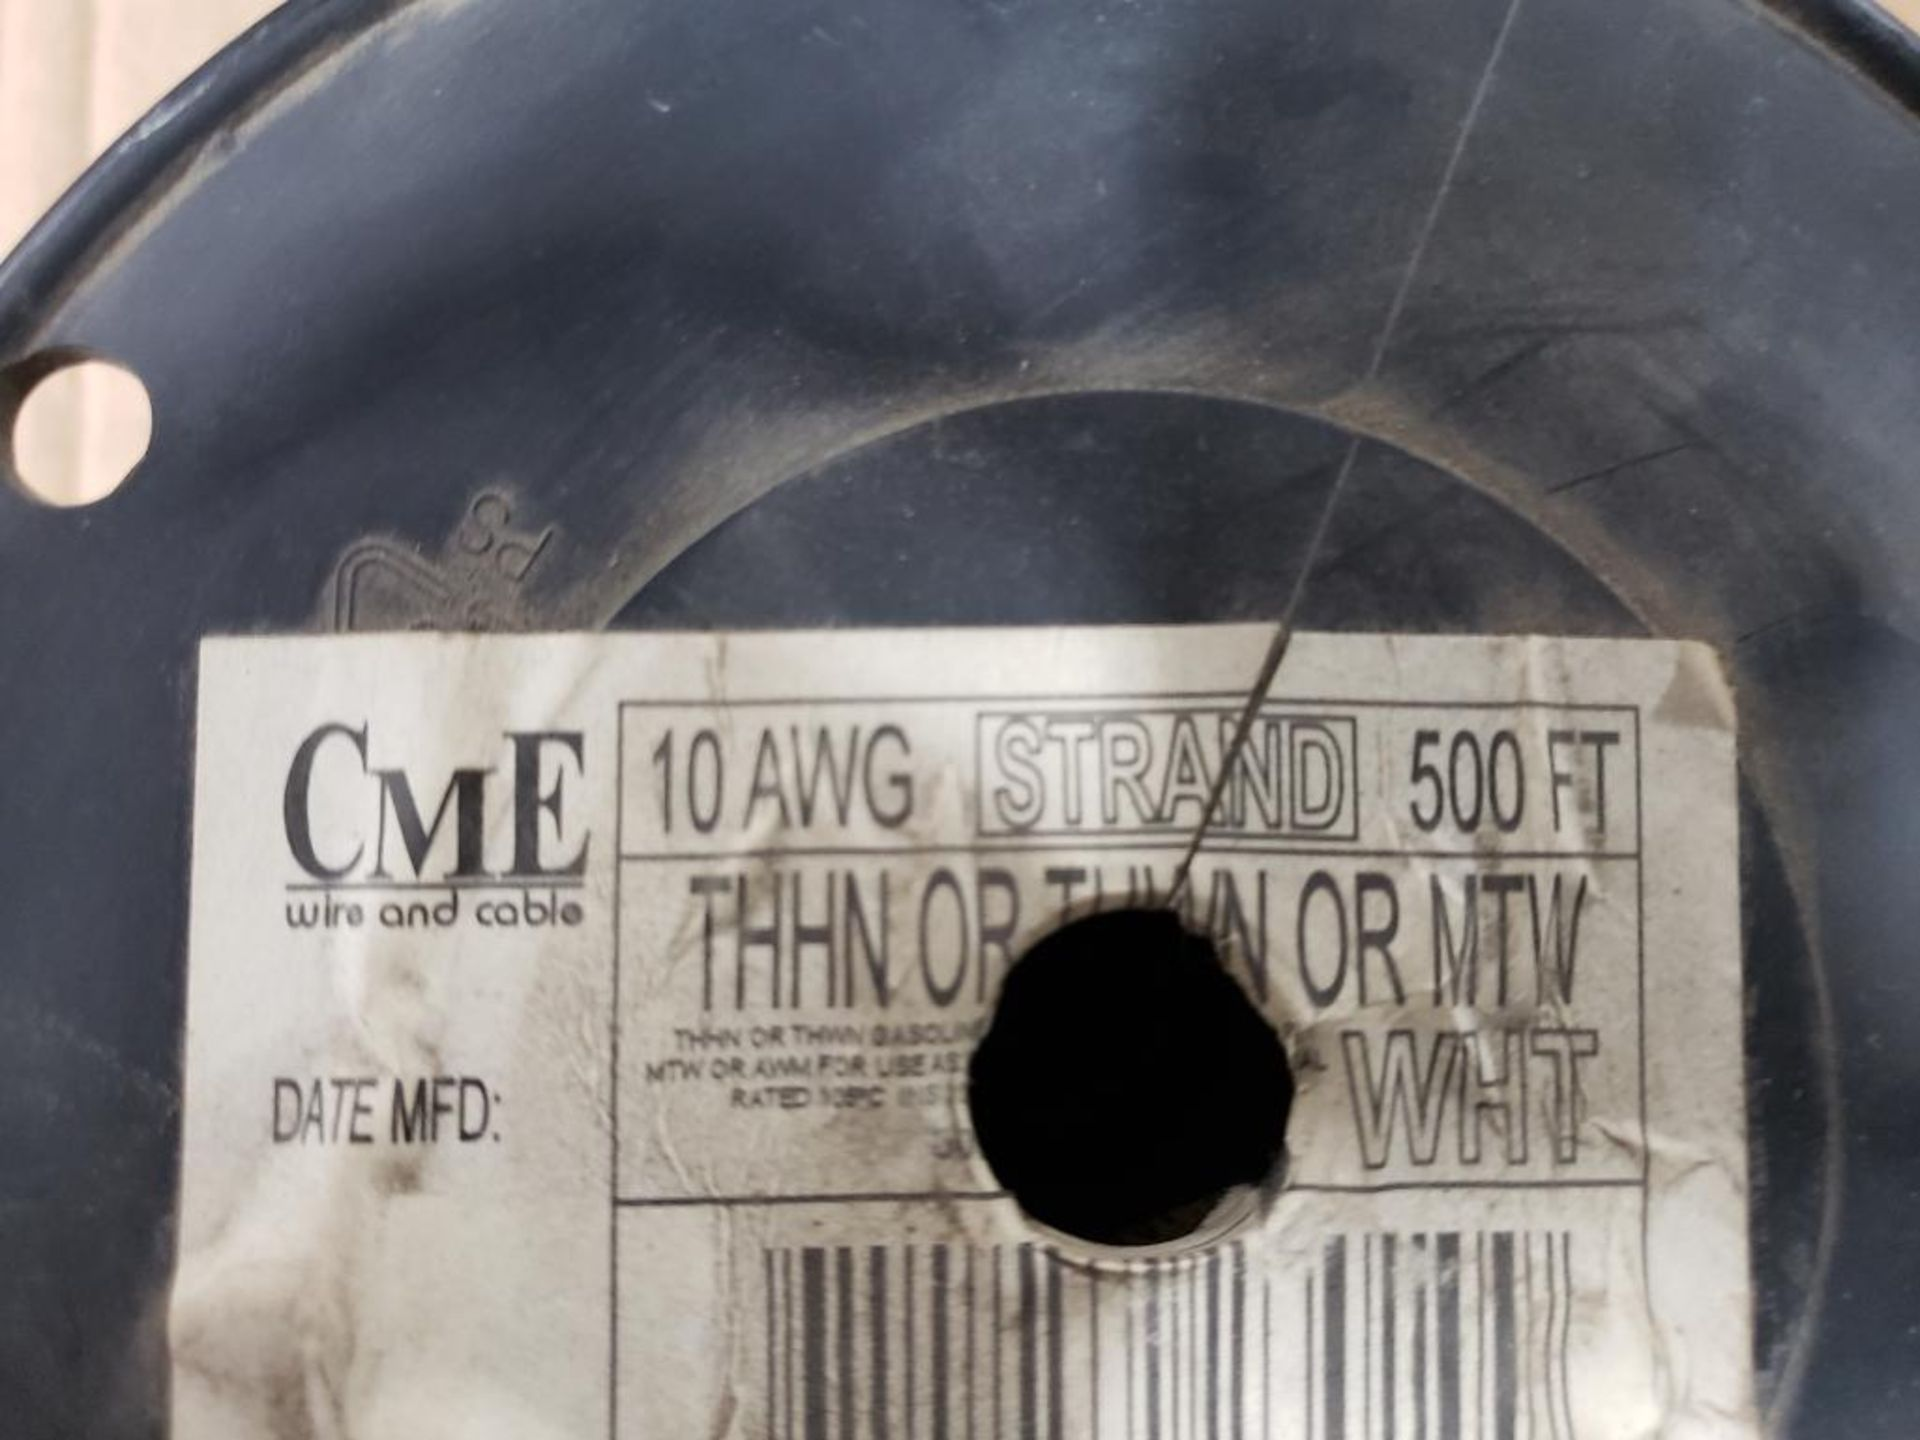 Qty 3 - Spool of ESSEX contractor wire. 12-RED THHN stranded, 10-WHITE. - Image 3 of 6